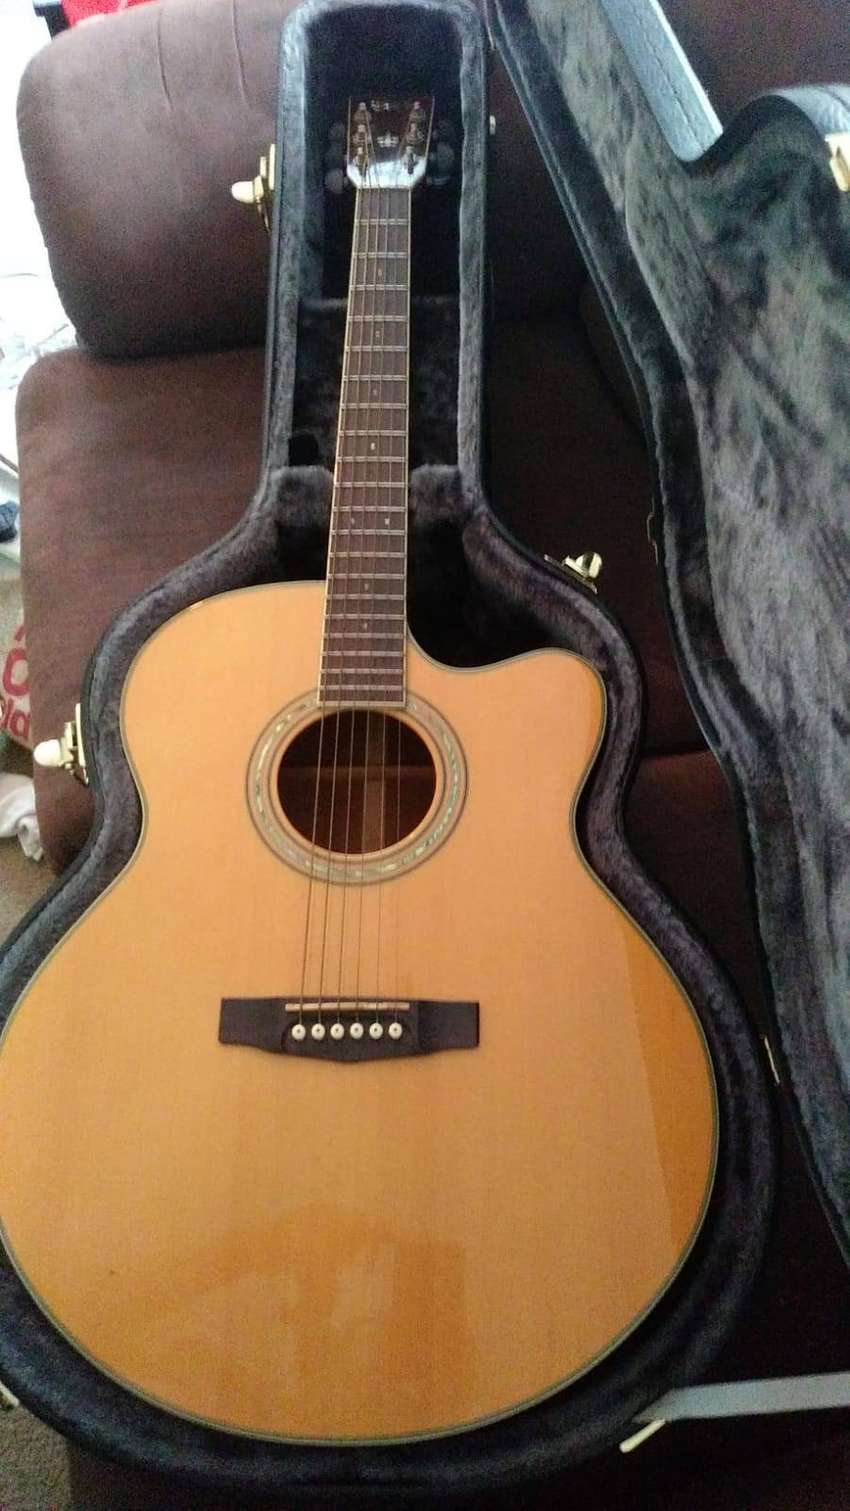 Cort Guitar CJ5X - Fantastic Guitar - Great Condition - Served me well